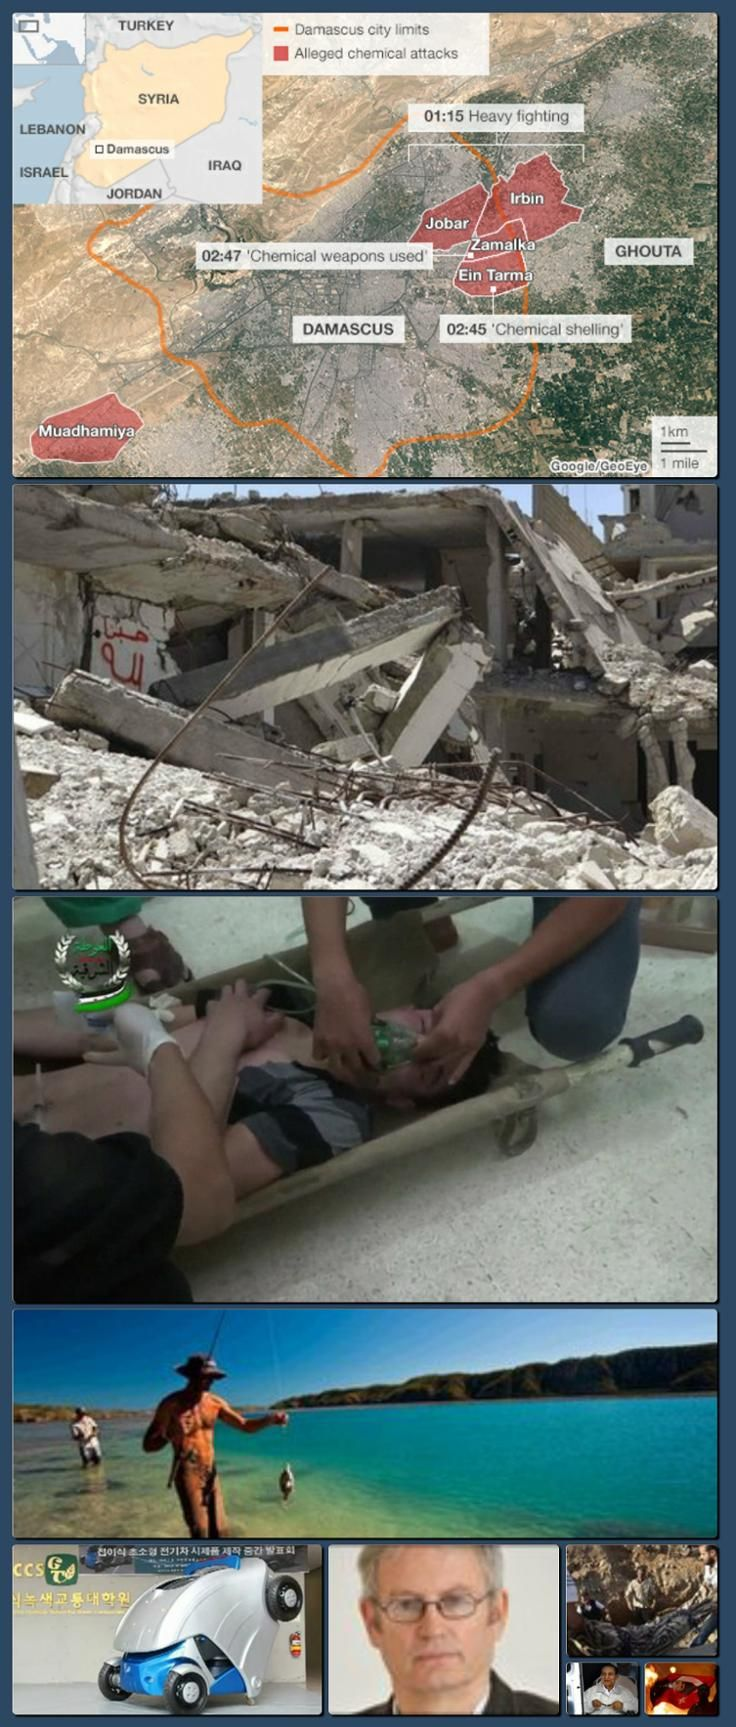 BBC News - Syria to allow UN inspect 'chemical weapon' attack site [Collage made with one click using http://pagecollage.com] #pagecollage